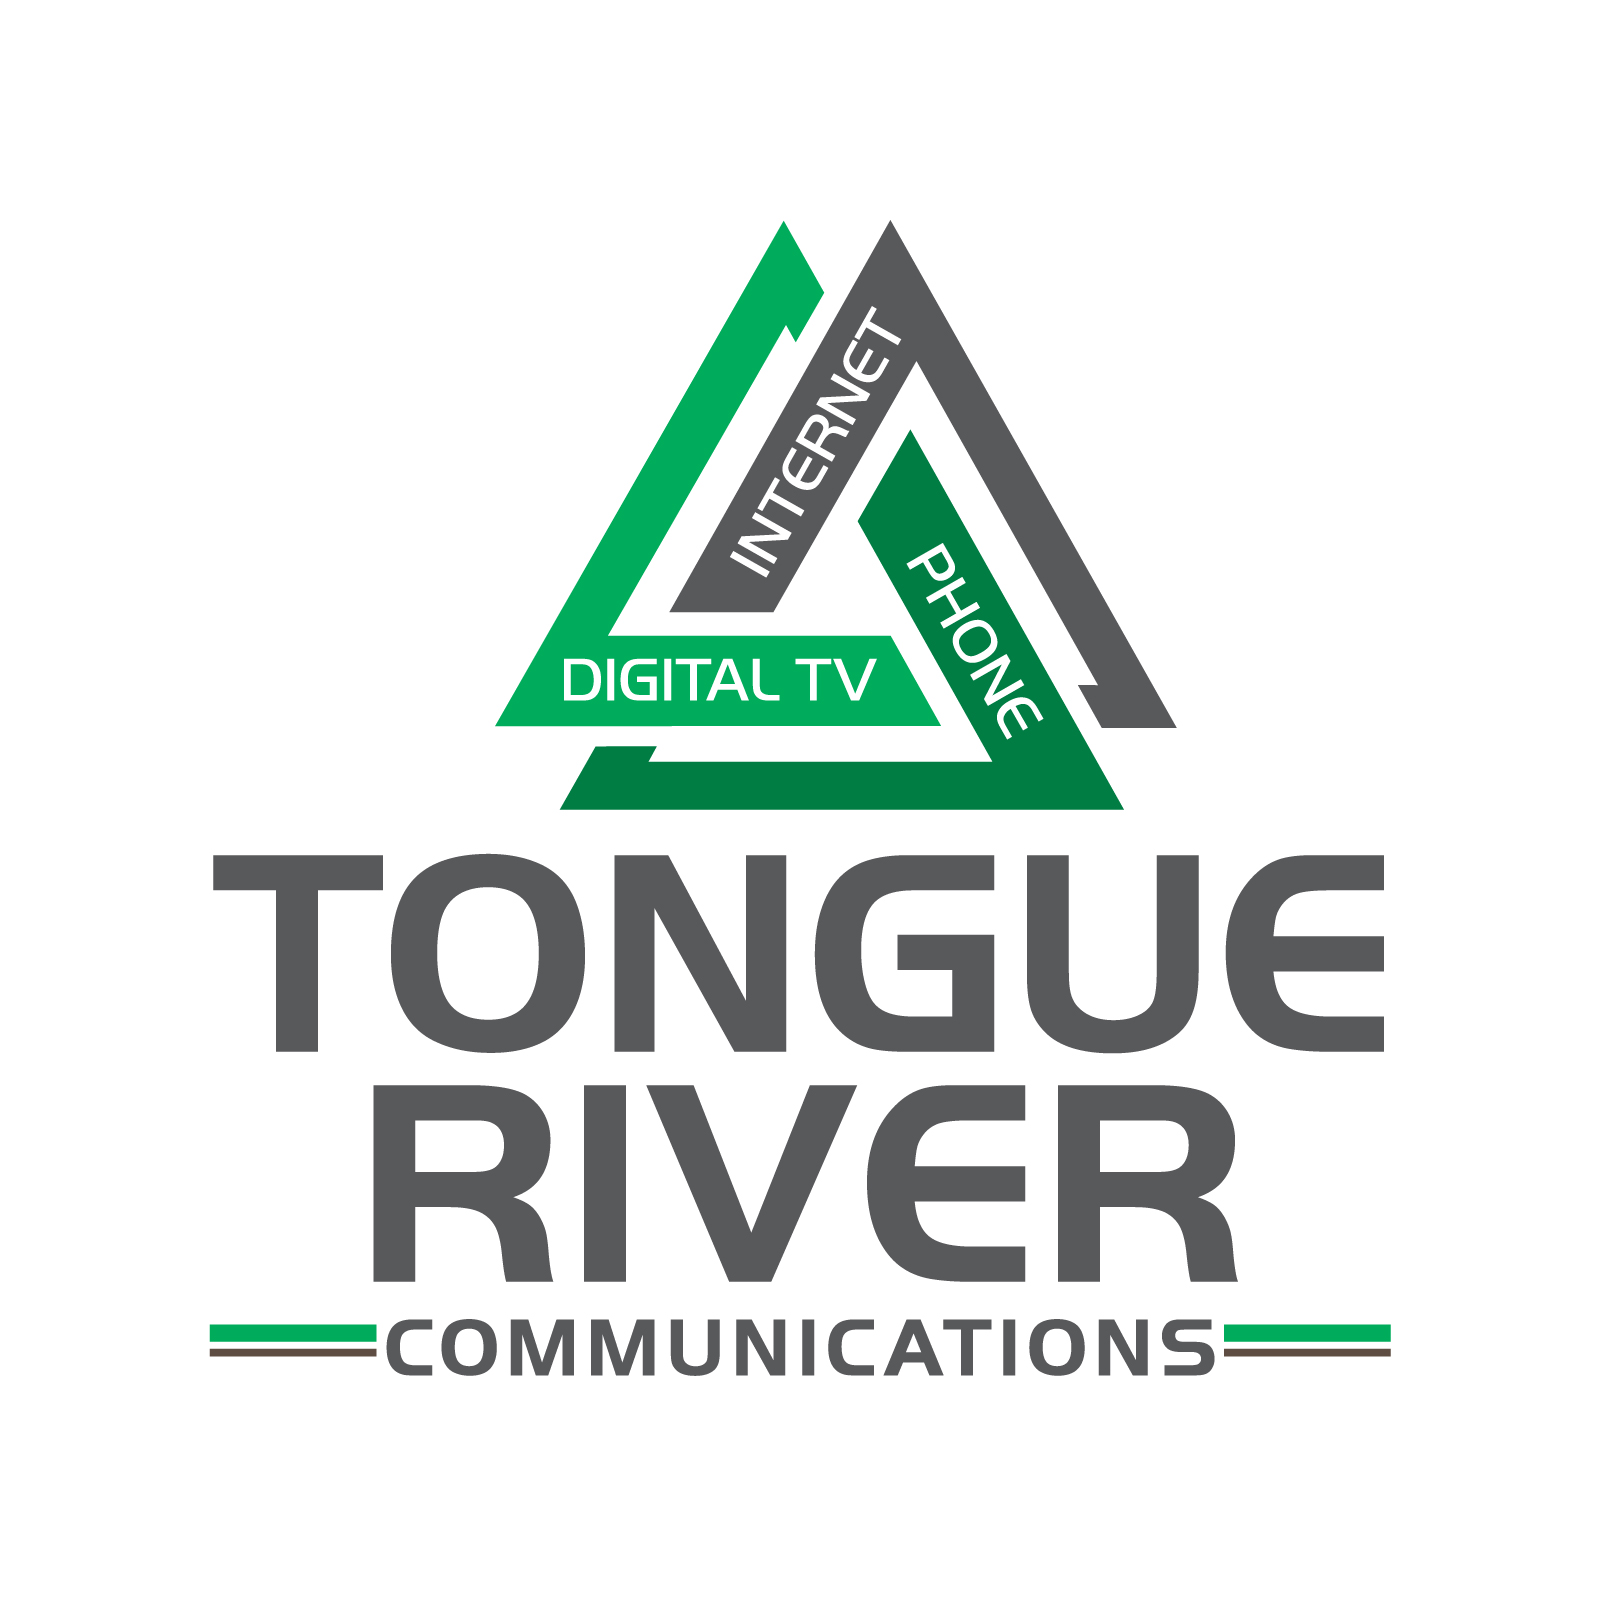 Tongue River Communications logo and website design